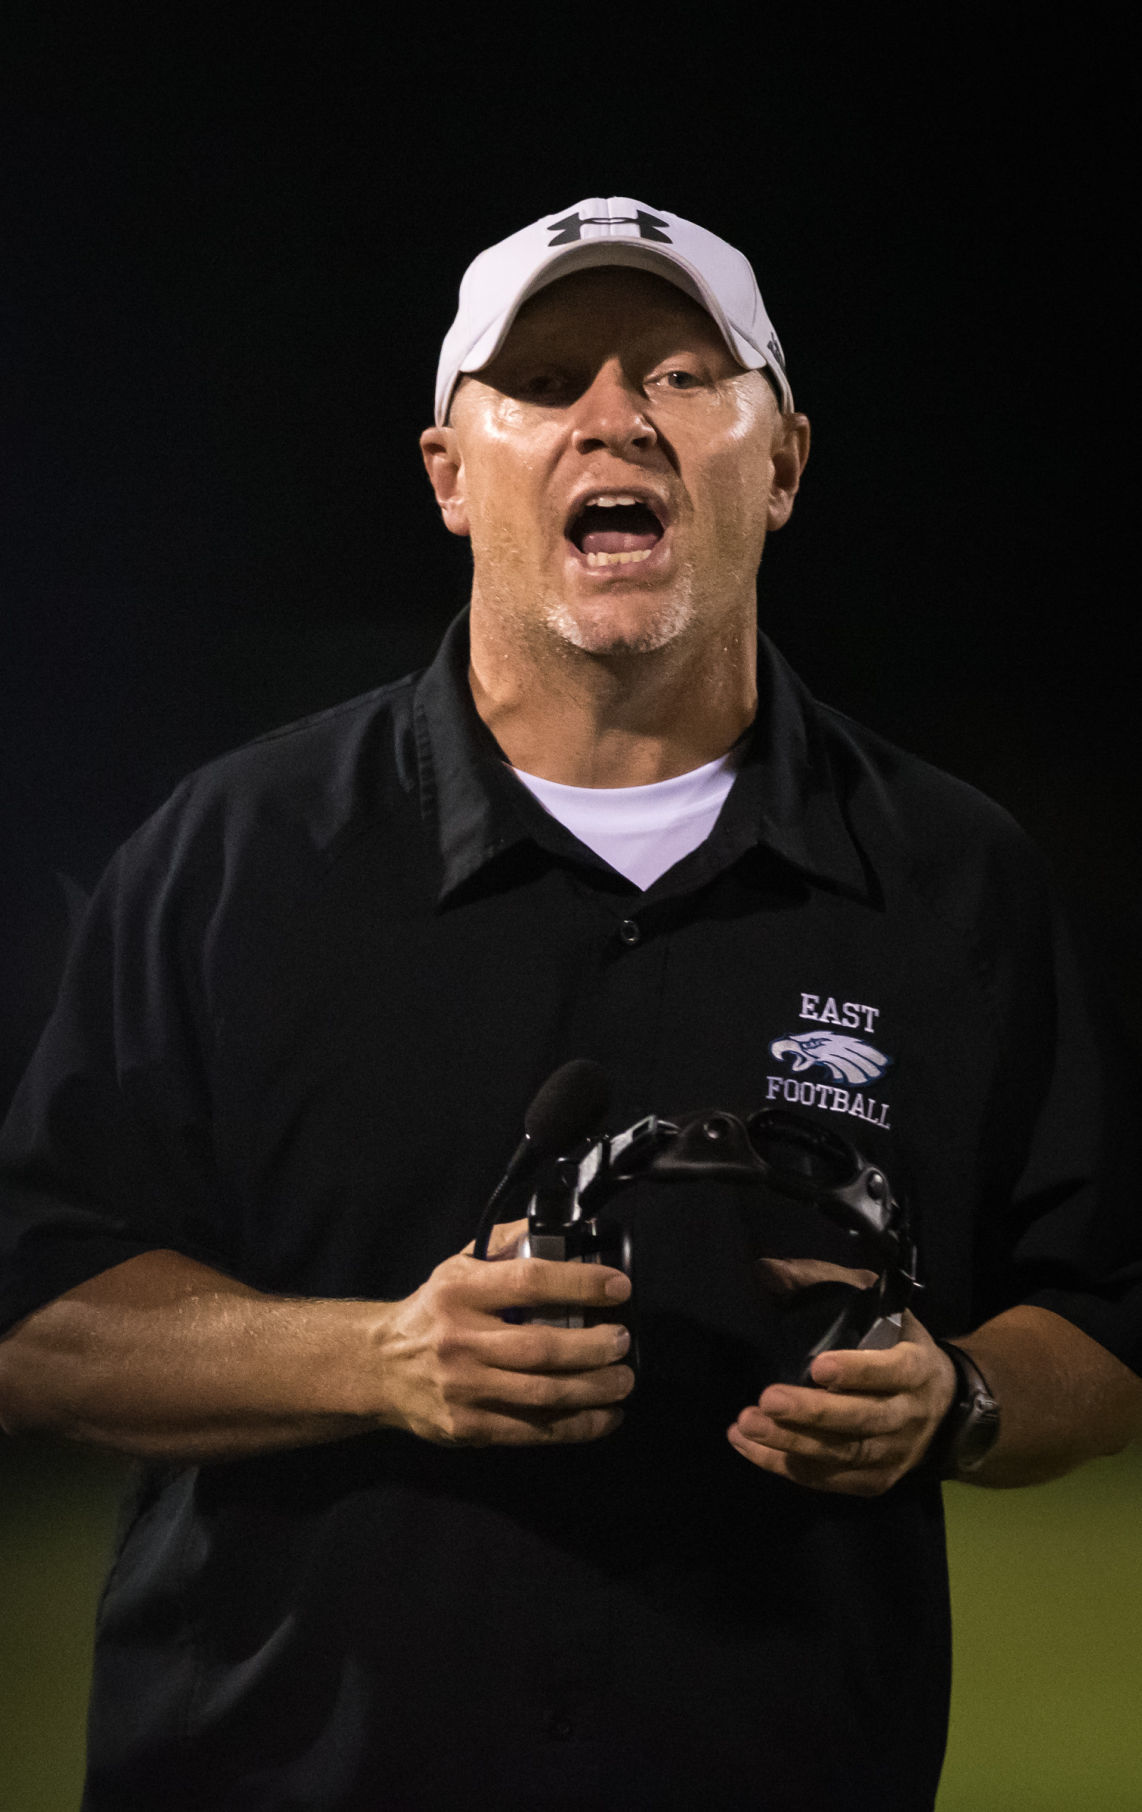 East Forsyth s Willert named one of the 10 coaches of the week by Carolina  Panthers 870dfbec2